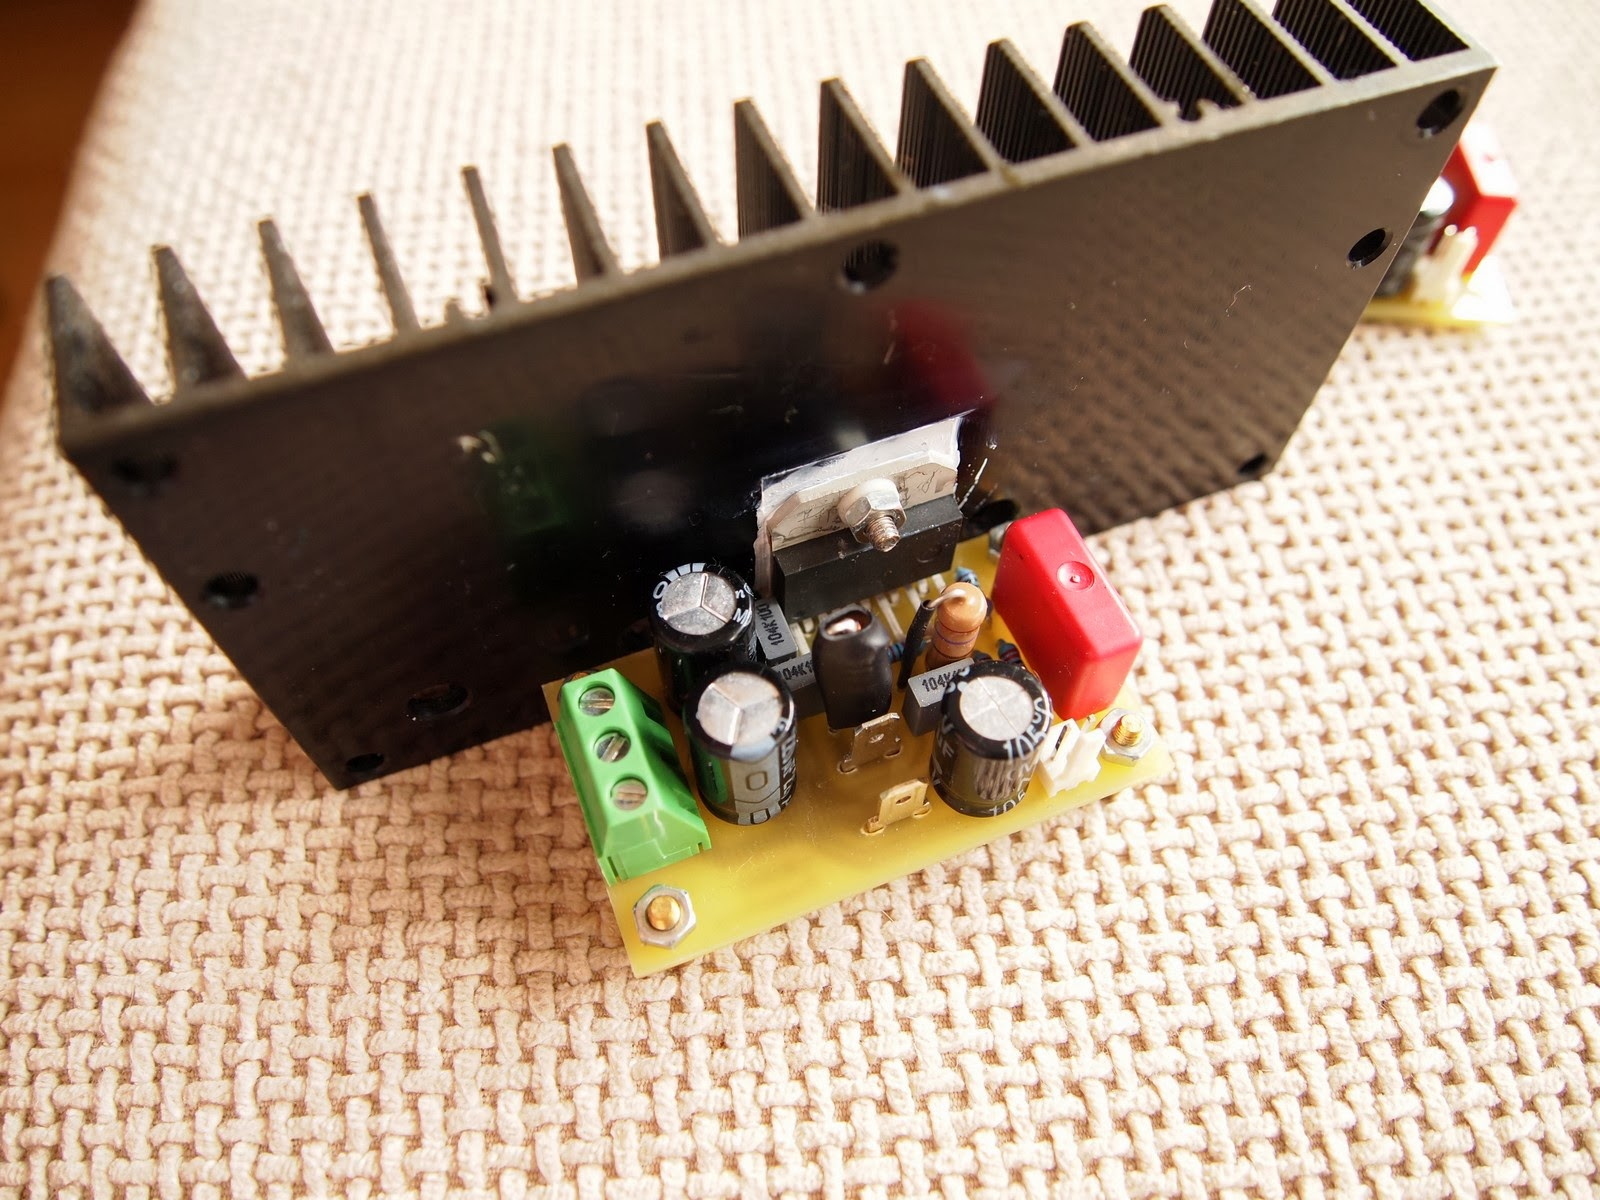 50w Lm3886 Power Amplifier Hifi Digital Stereo Amp Circuit Lm3886tf Small Audio